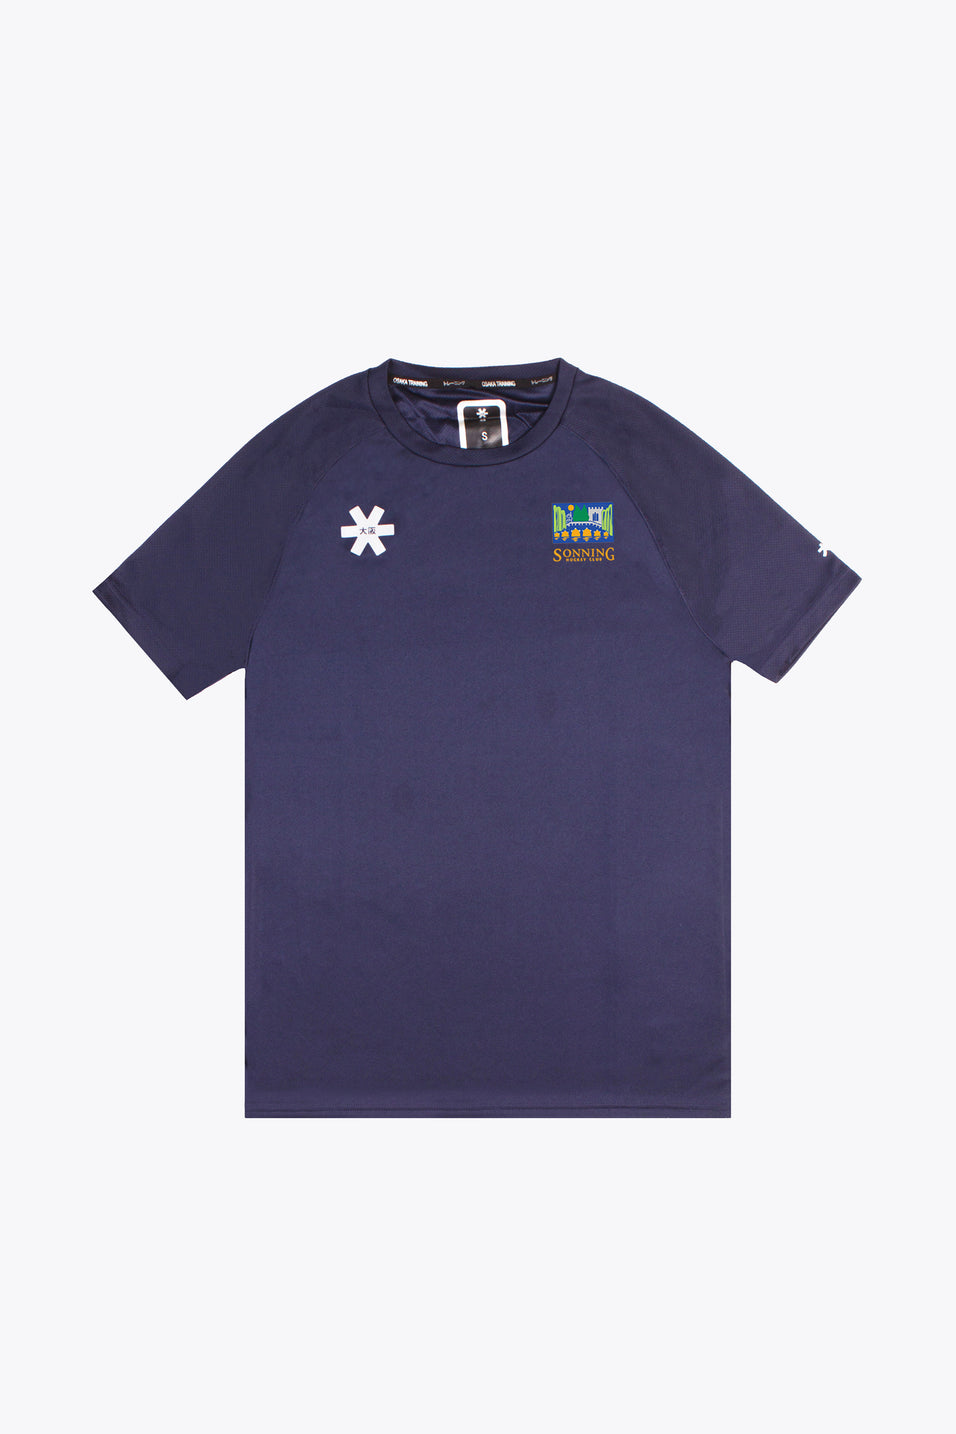 HC Sonning Men Training Tee - Navy